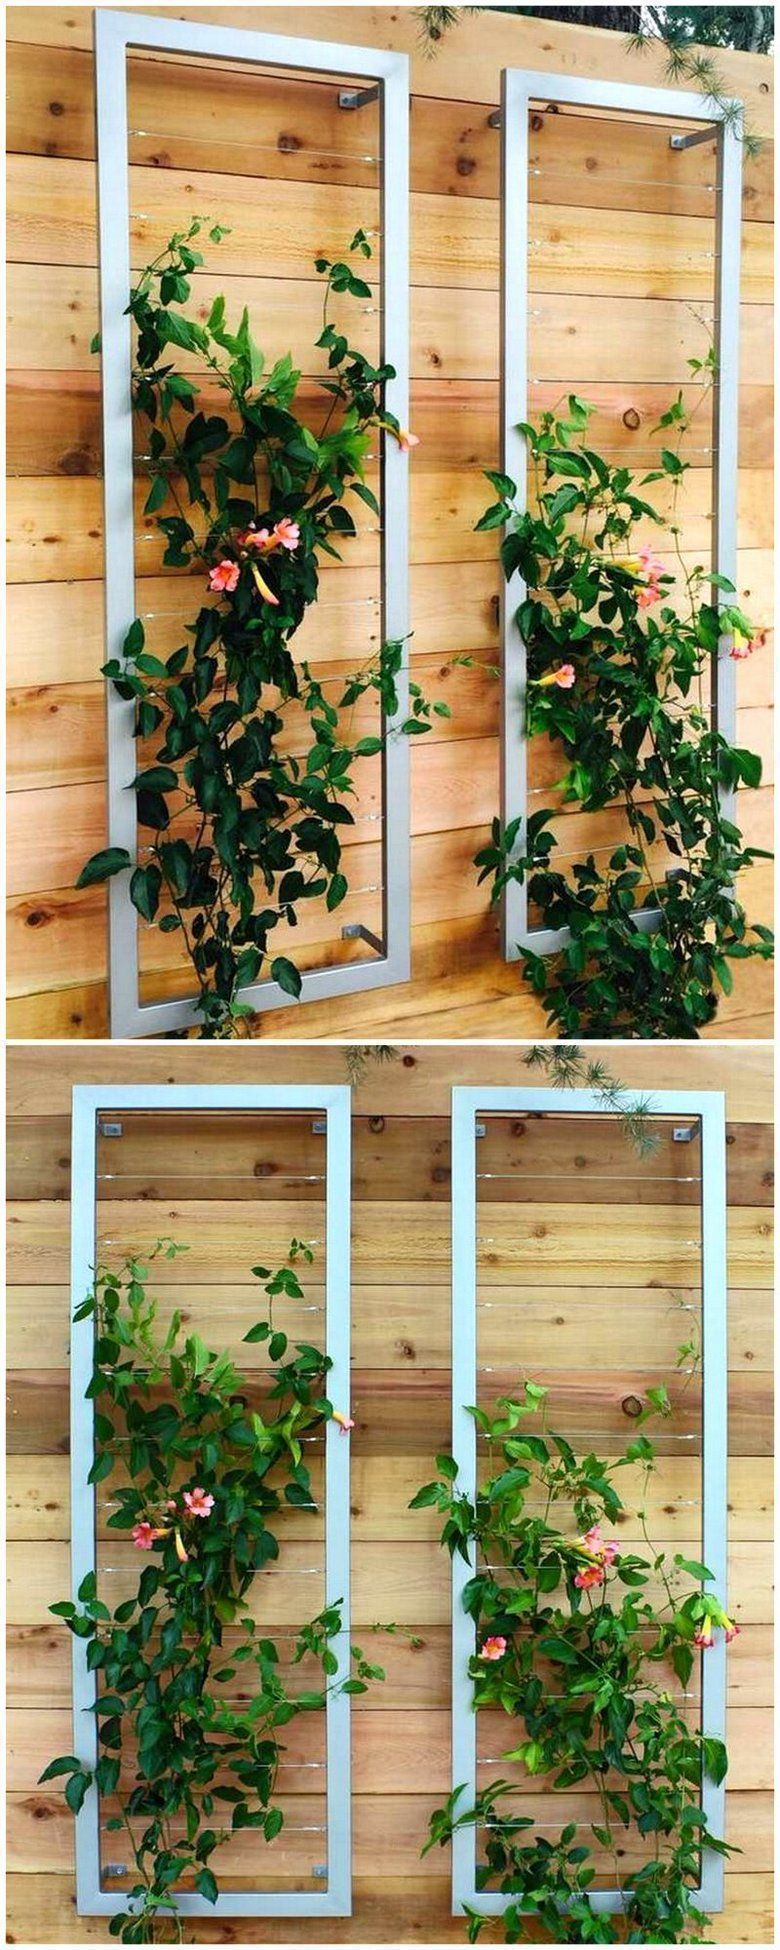 This Is One Of The Best Trellis Design With A Silvery Finish Color